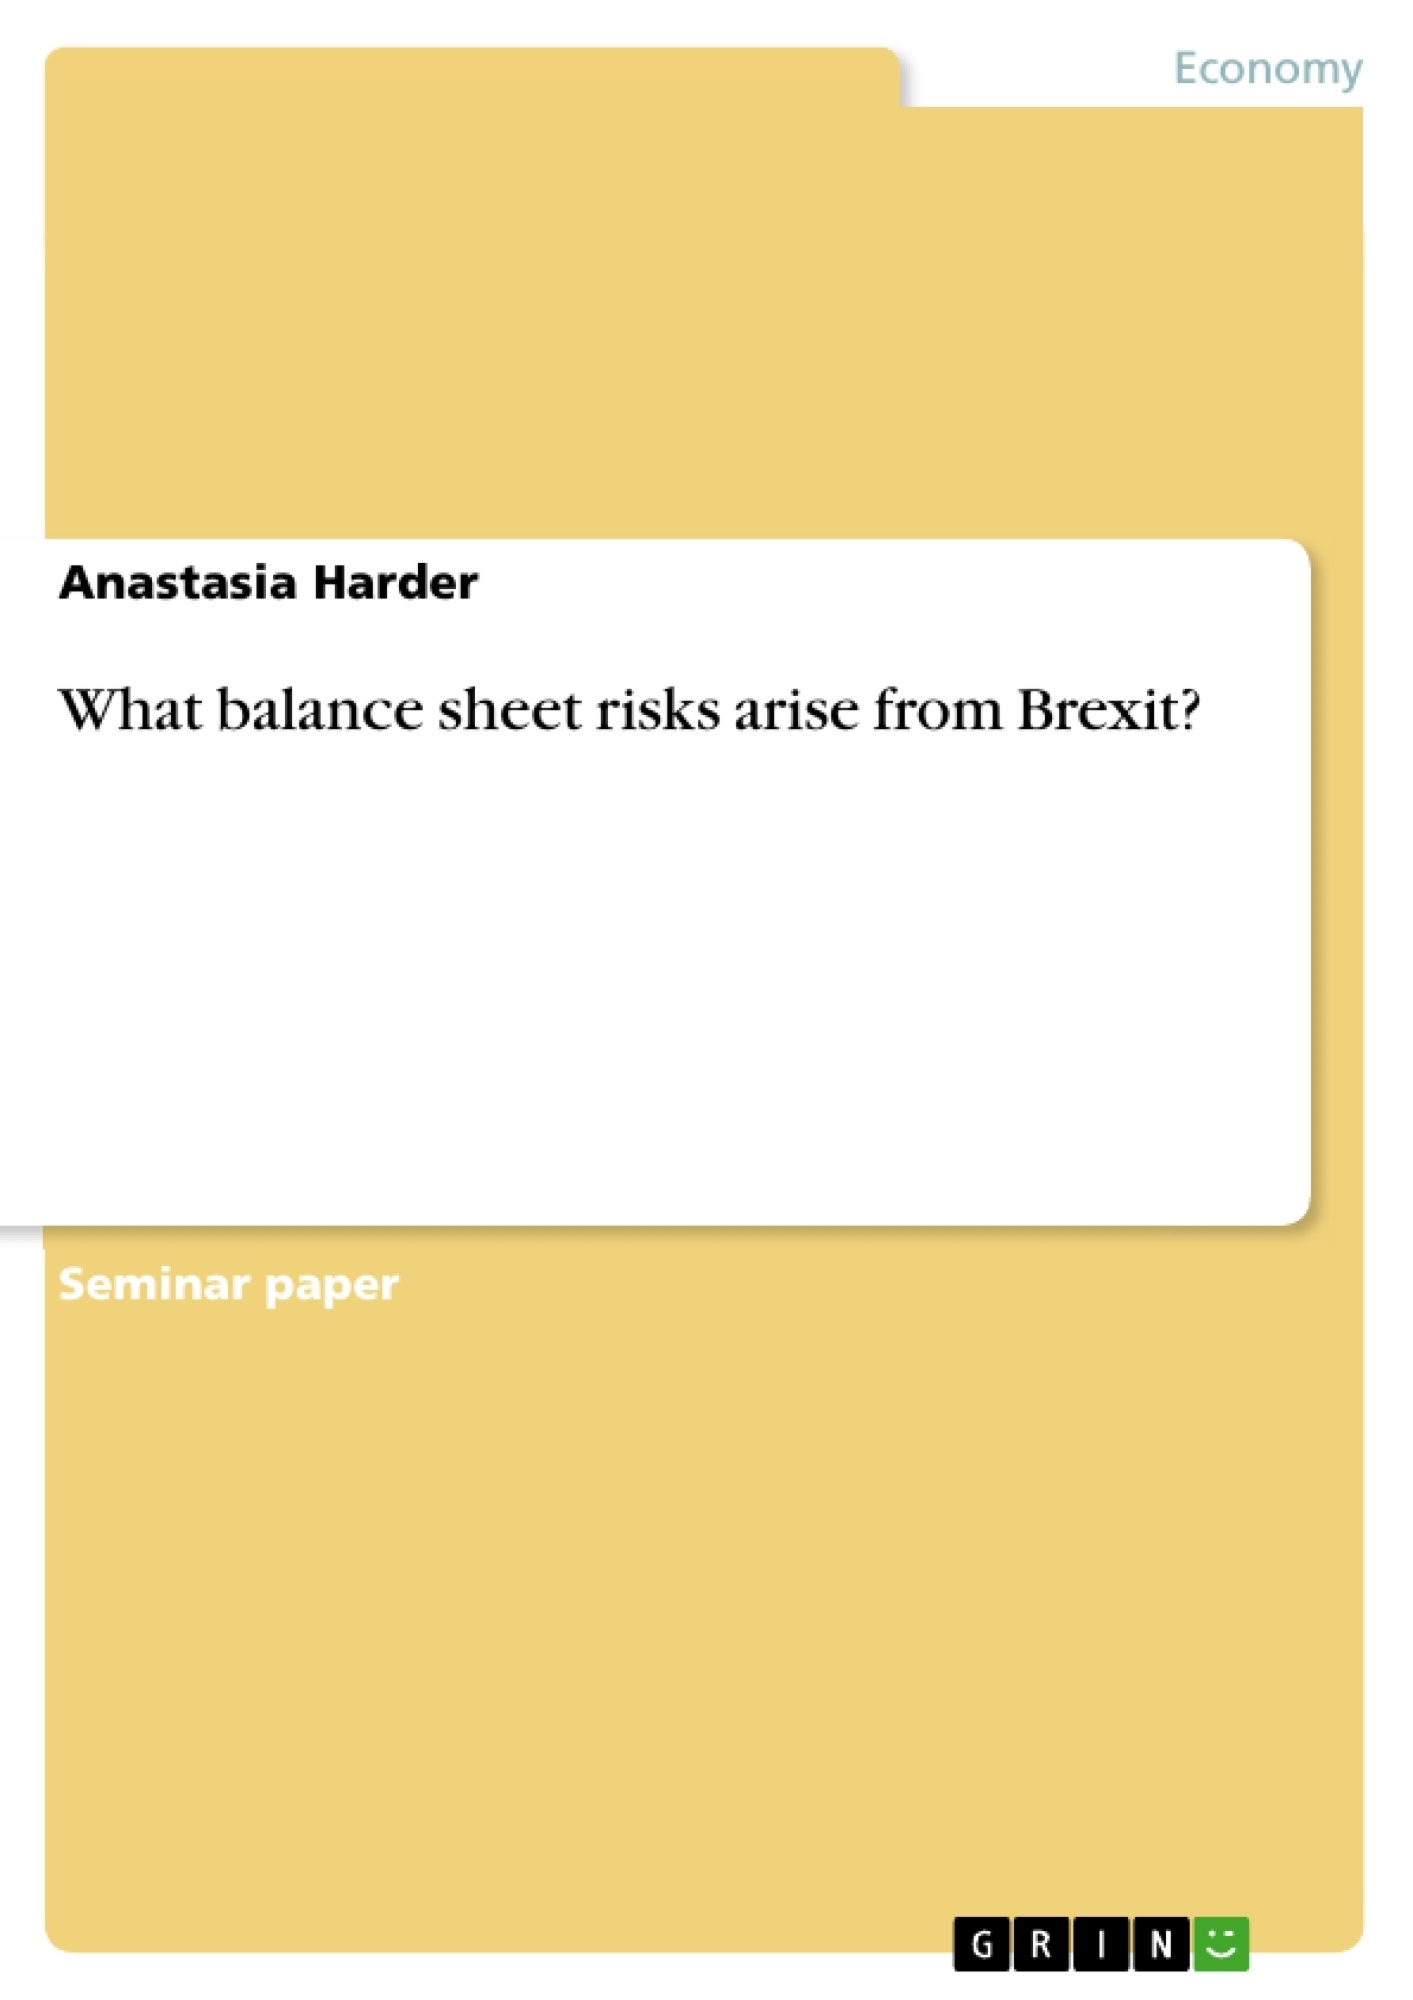 Title: What balance sheet risks arise from Brexit?